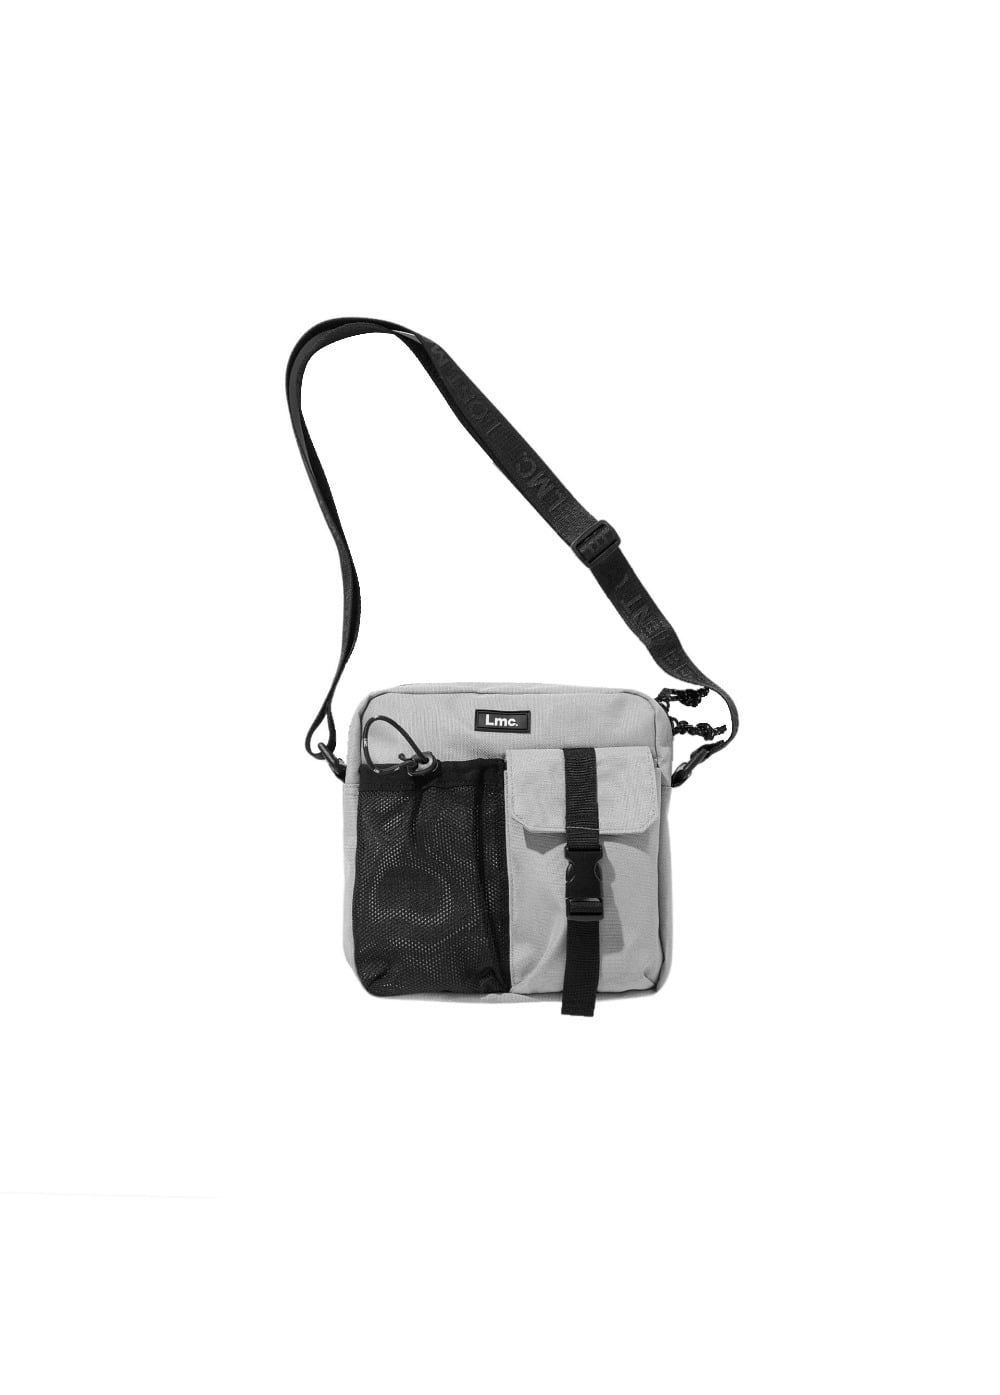 LMC MINI CROSS BAG gray